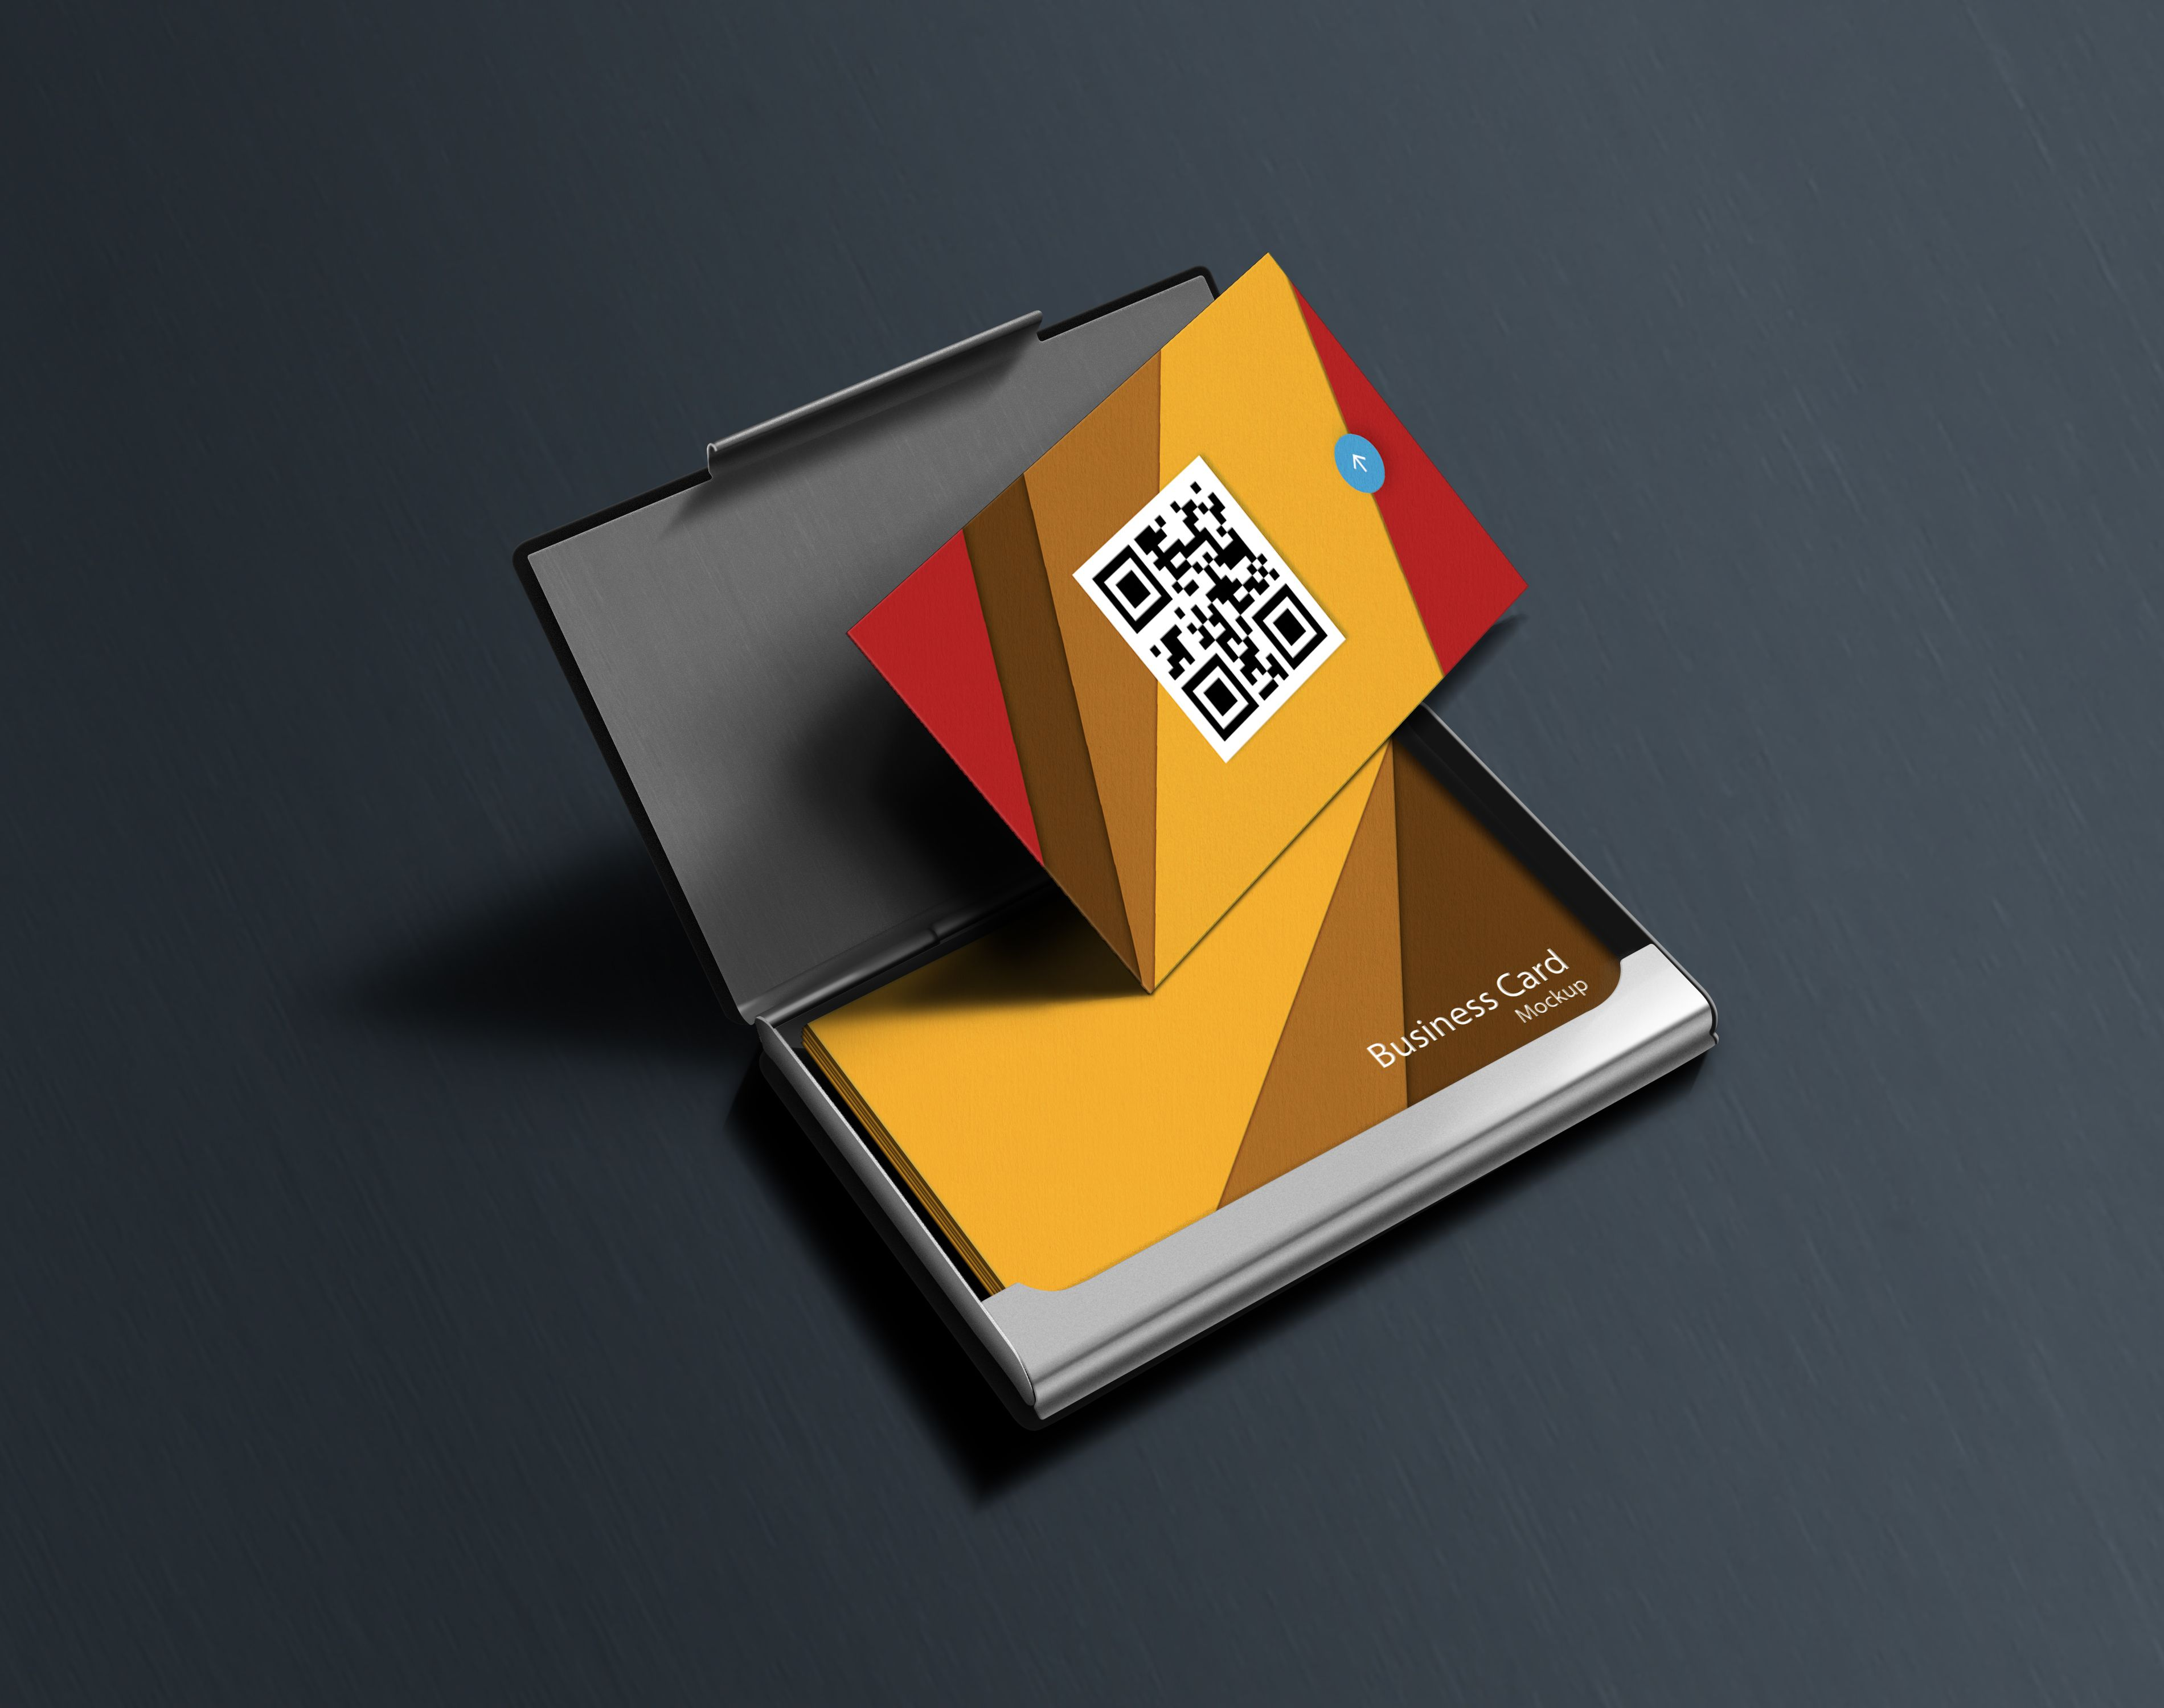 Business-Card-PSD-Mockup-v4-Ful.jpg (3800×3000) | mock up PH | Pinterest